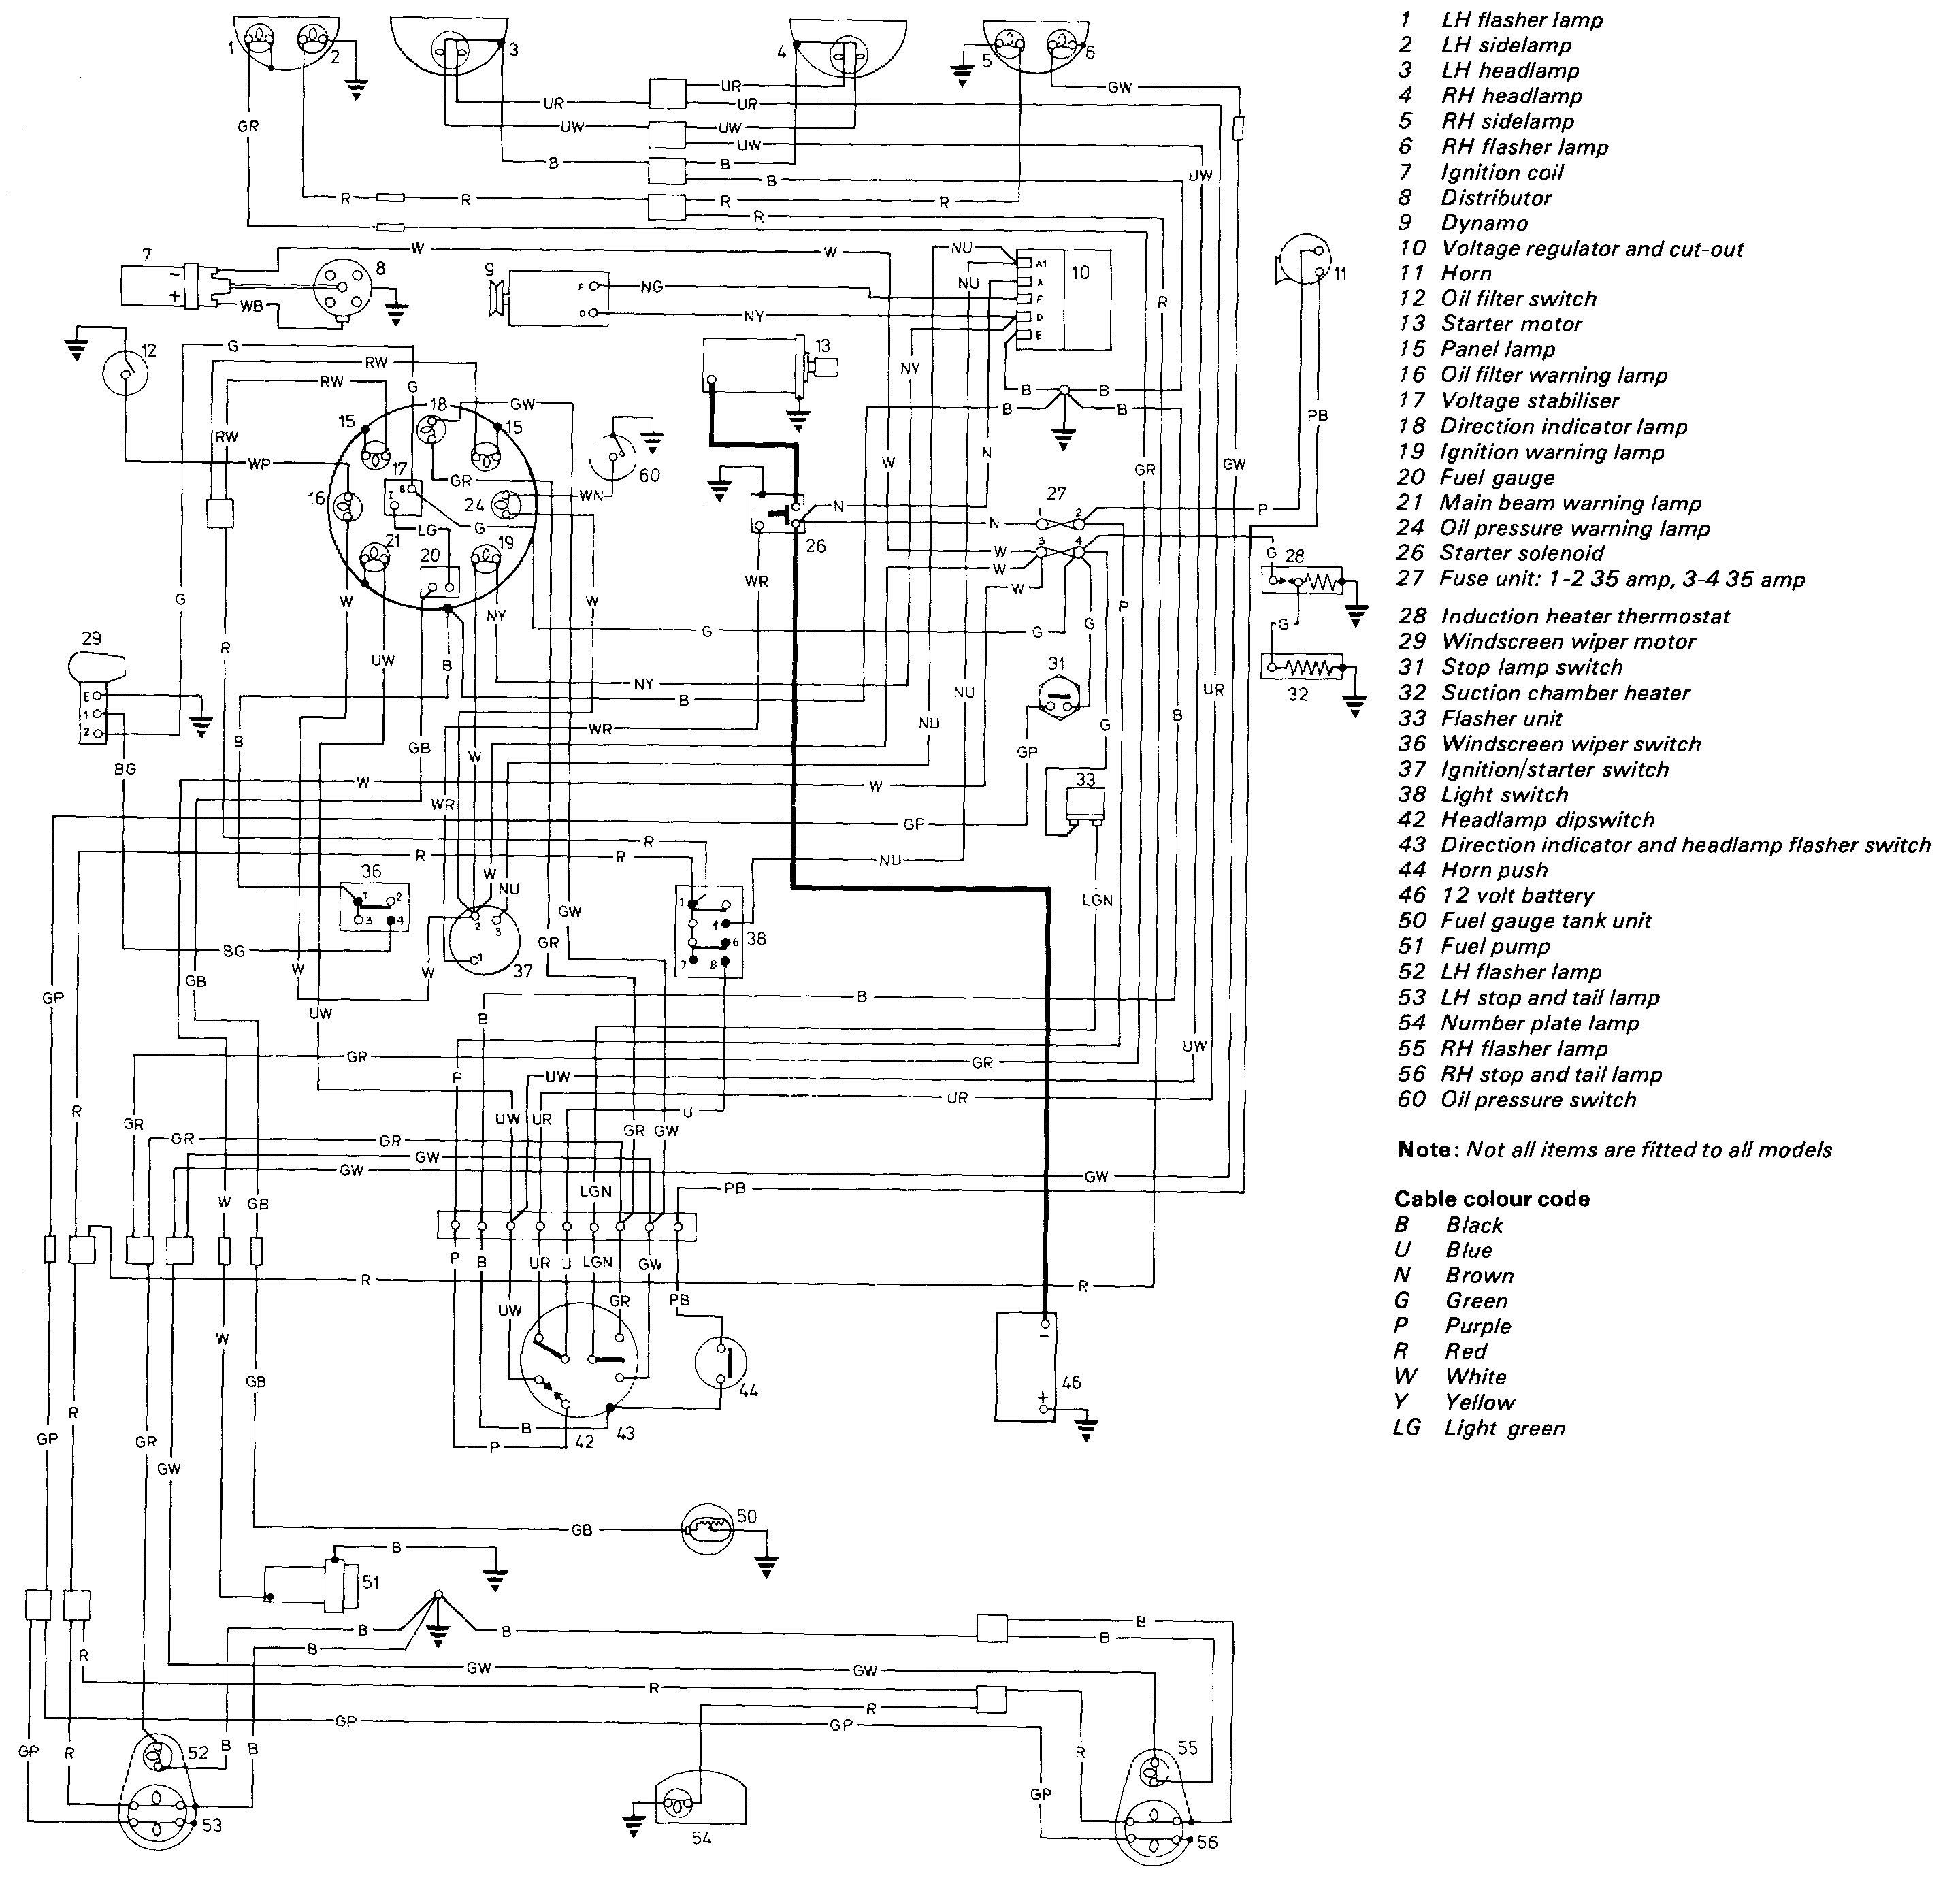 E46 Pdc Wiring Diagram